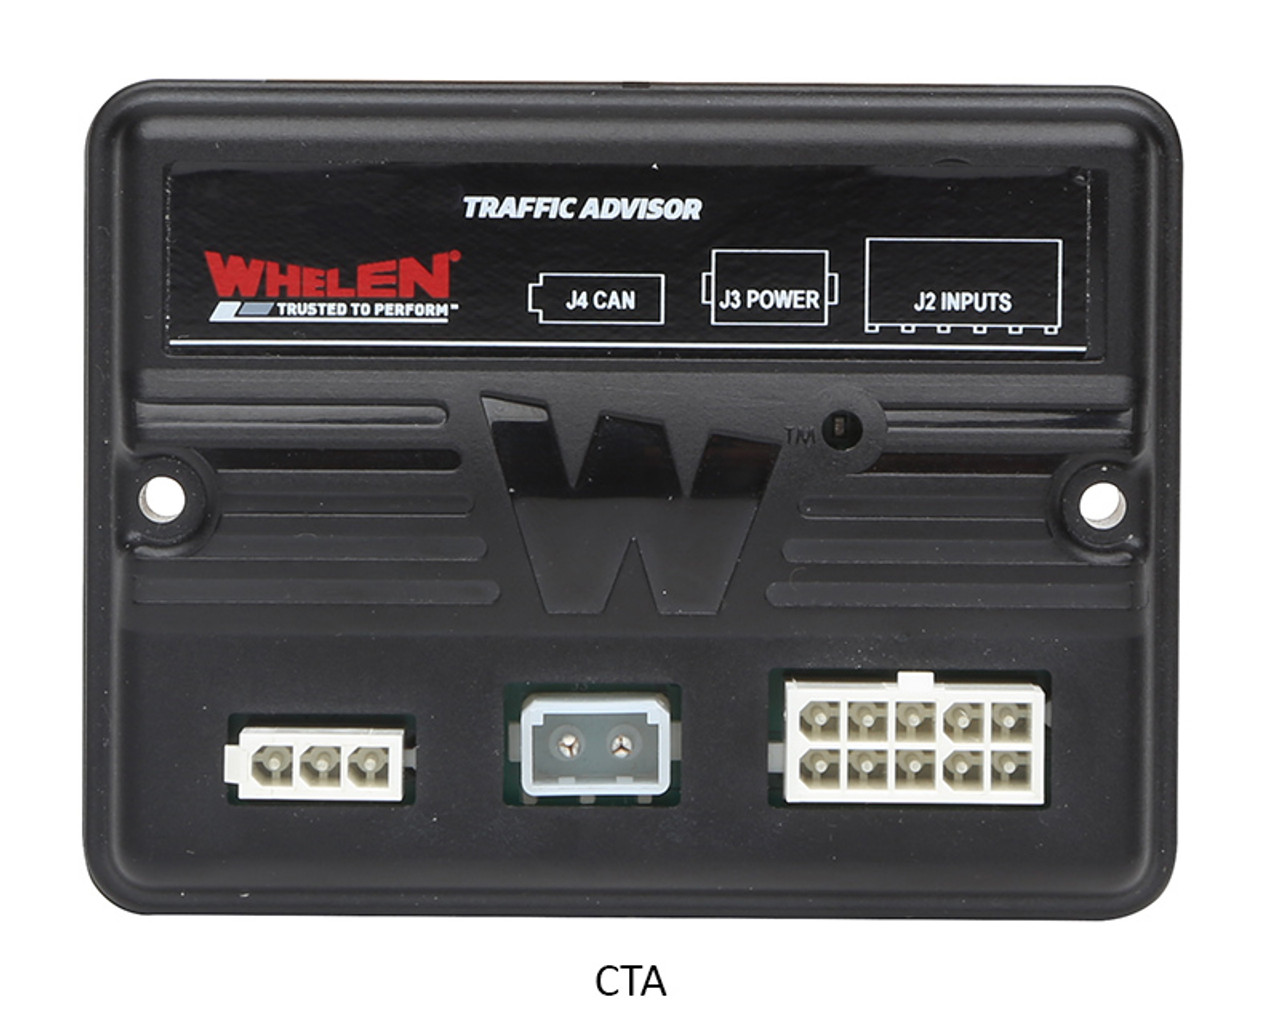 Whelen Cencom Core WeCanX Siren C399, CCTL5 Hand-Held Light Controller, and C399K* CANport OBDII Interface, Optional Vehicle-to-Vehicle Sync Module, Designed for Law Enforcement and Public Safety